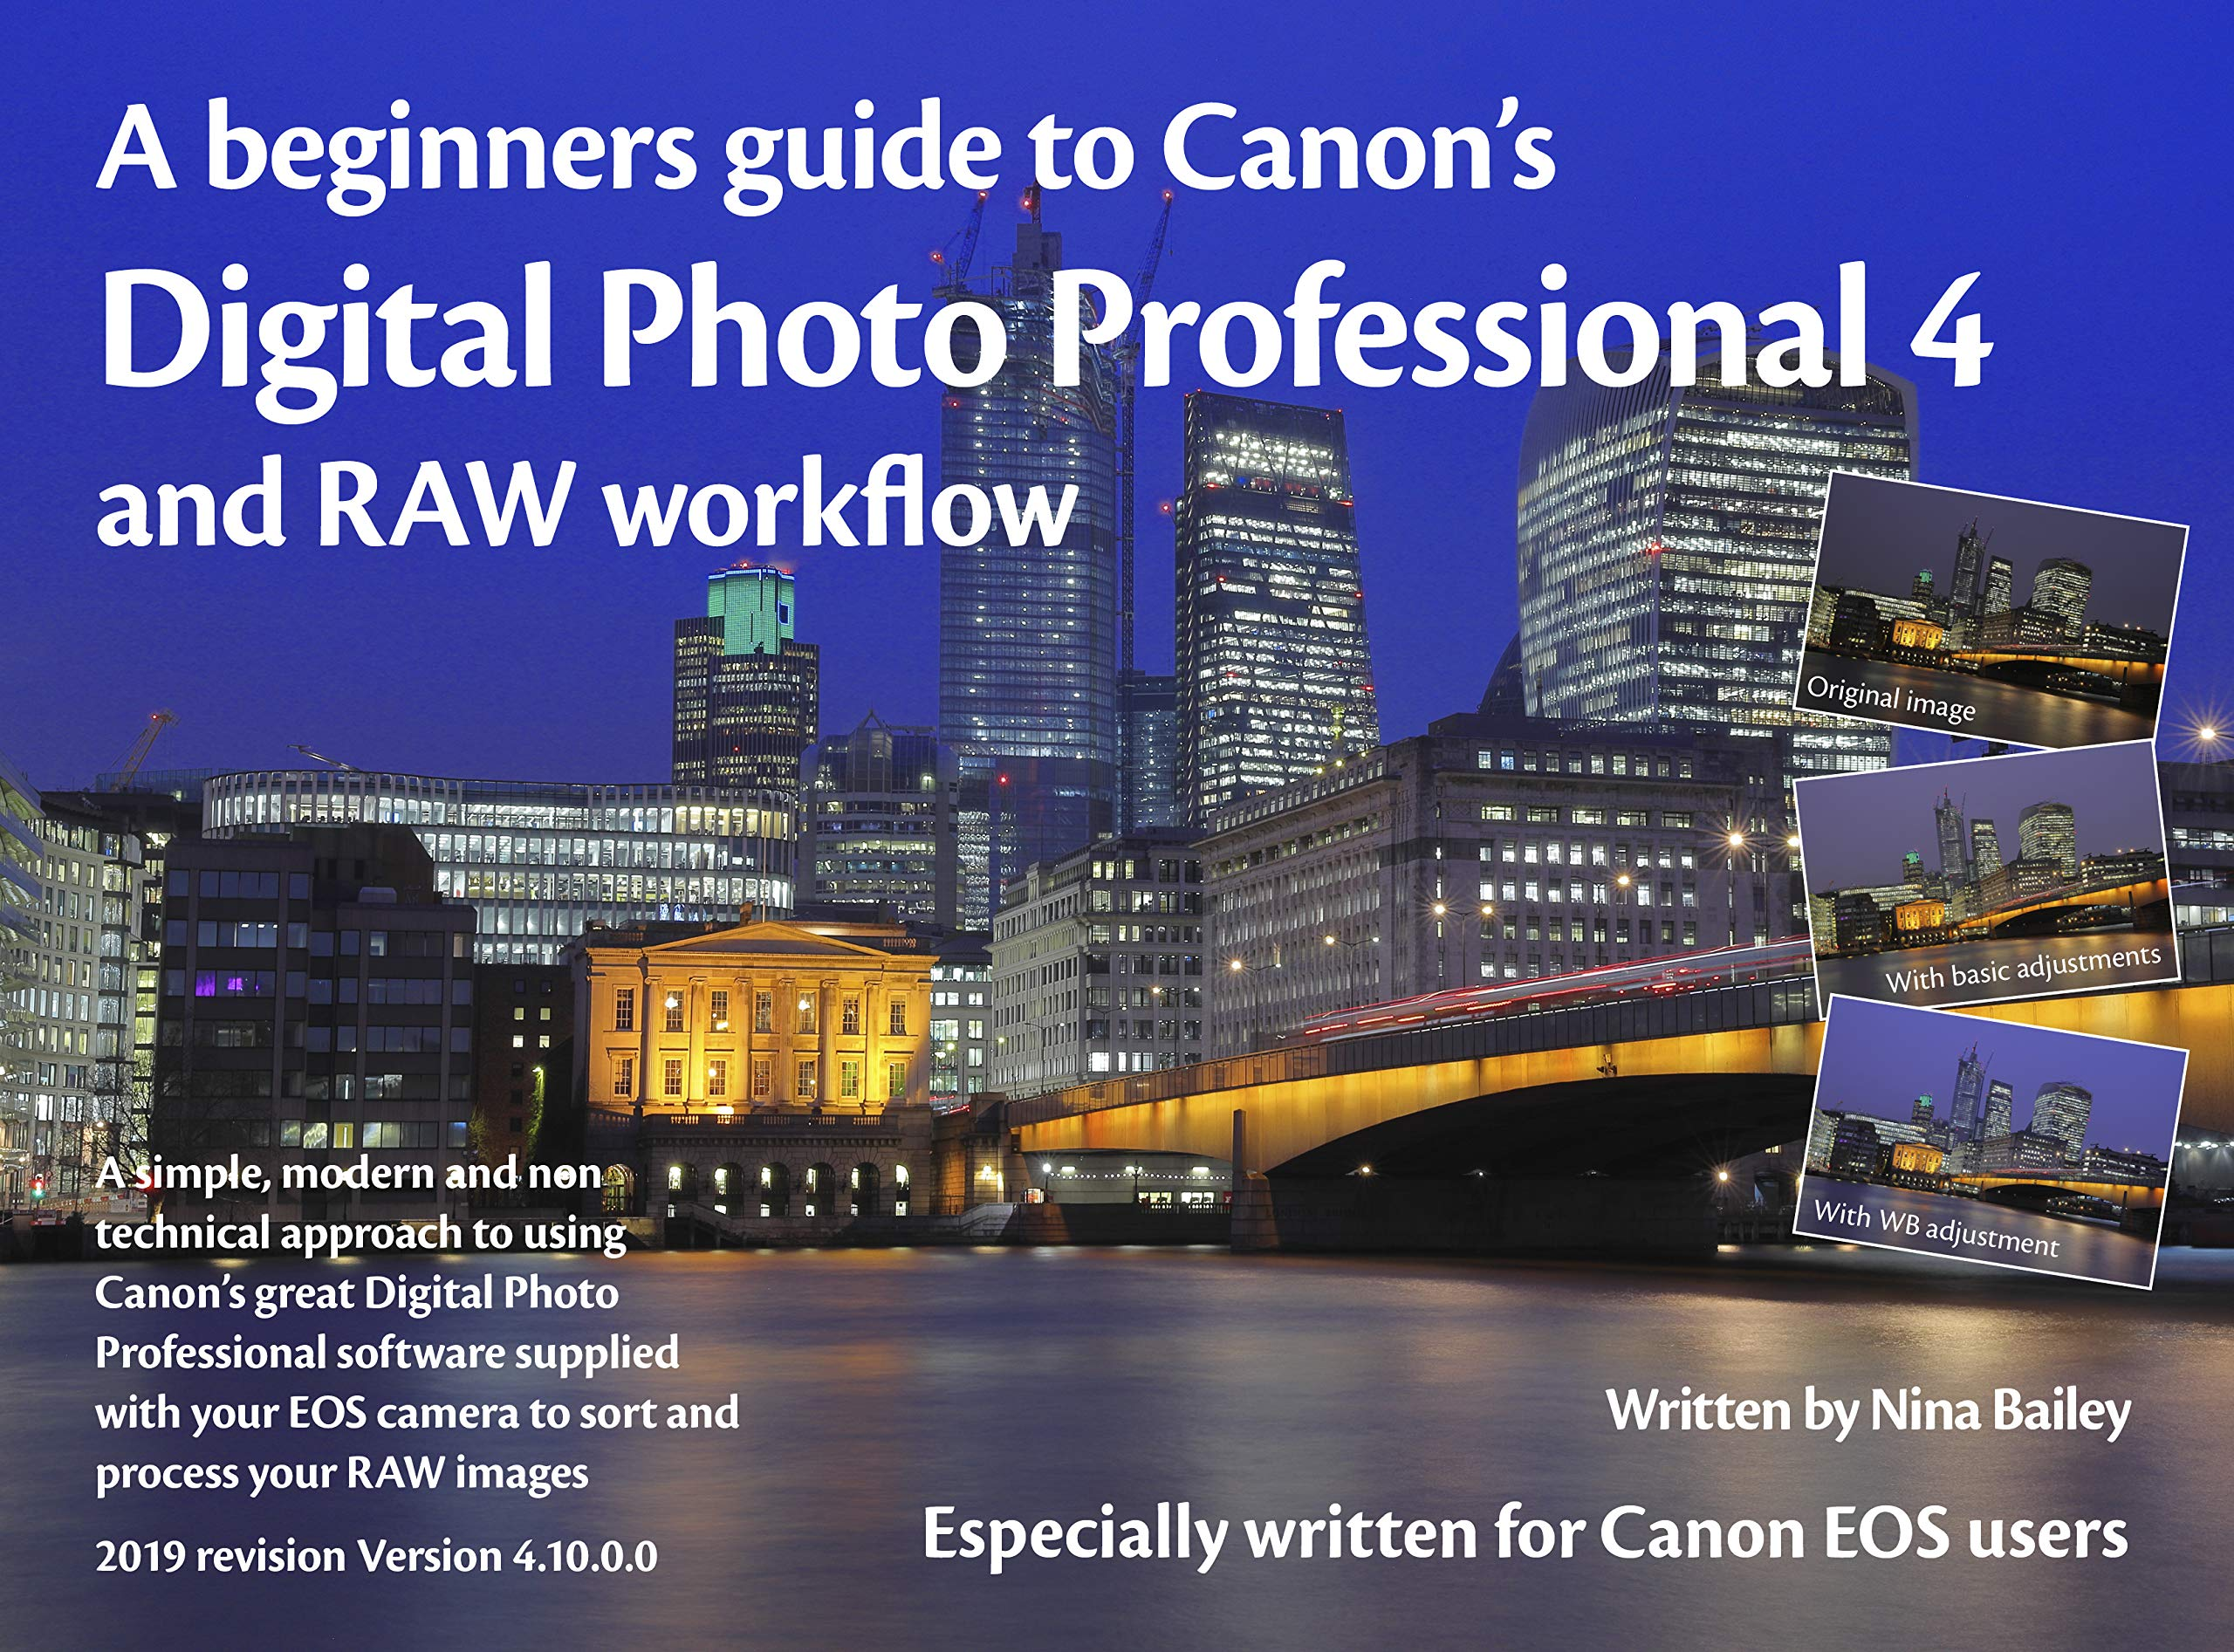 A beginners guide to Canon's Digital Photo Professional 4 and RAW workflow: Especially written for Canon EOS users